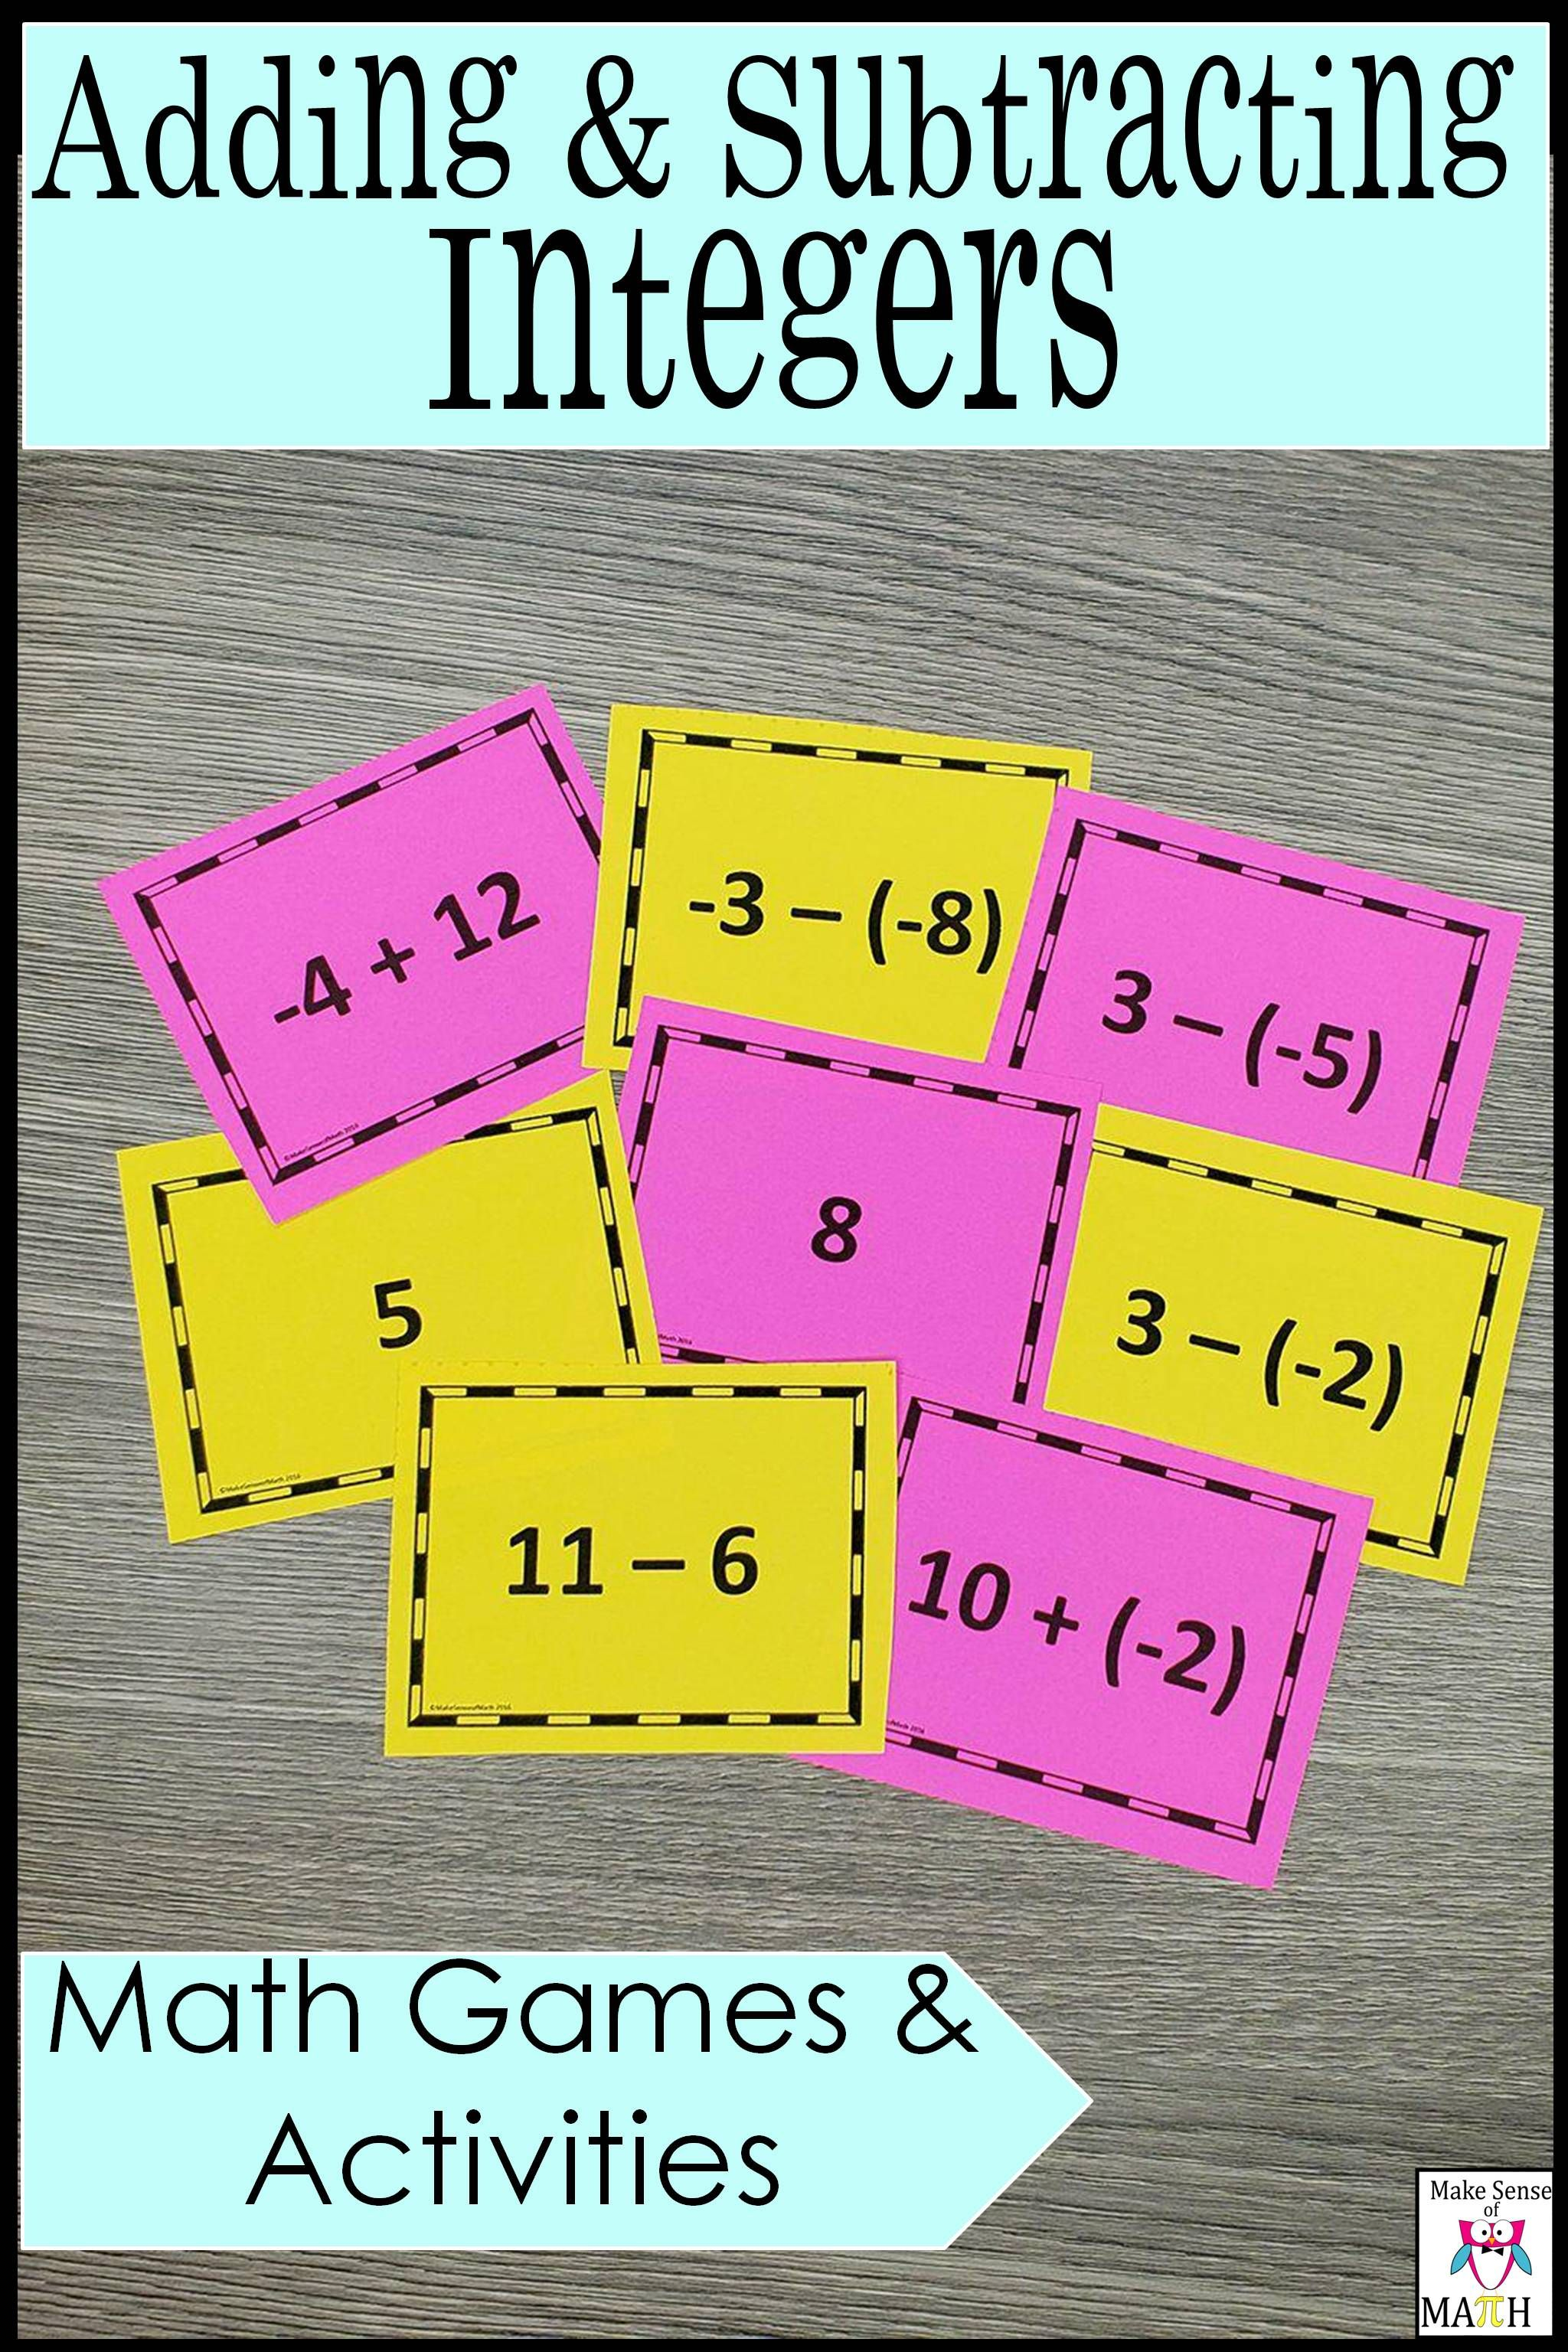 Adding And Subtracting Integers Task Card Games And Activities Adding And Subtracting Integers Math Games Middle School Maths Activities Middle School Adding and subtracting integers fun